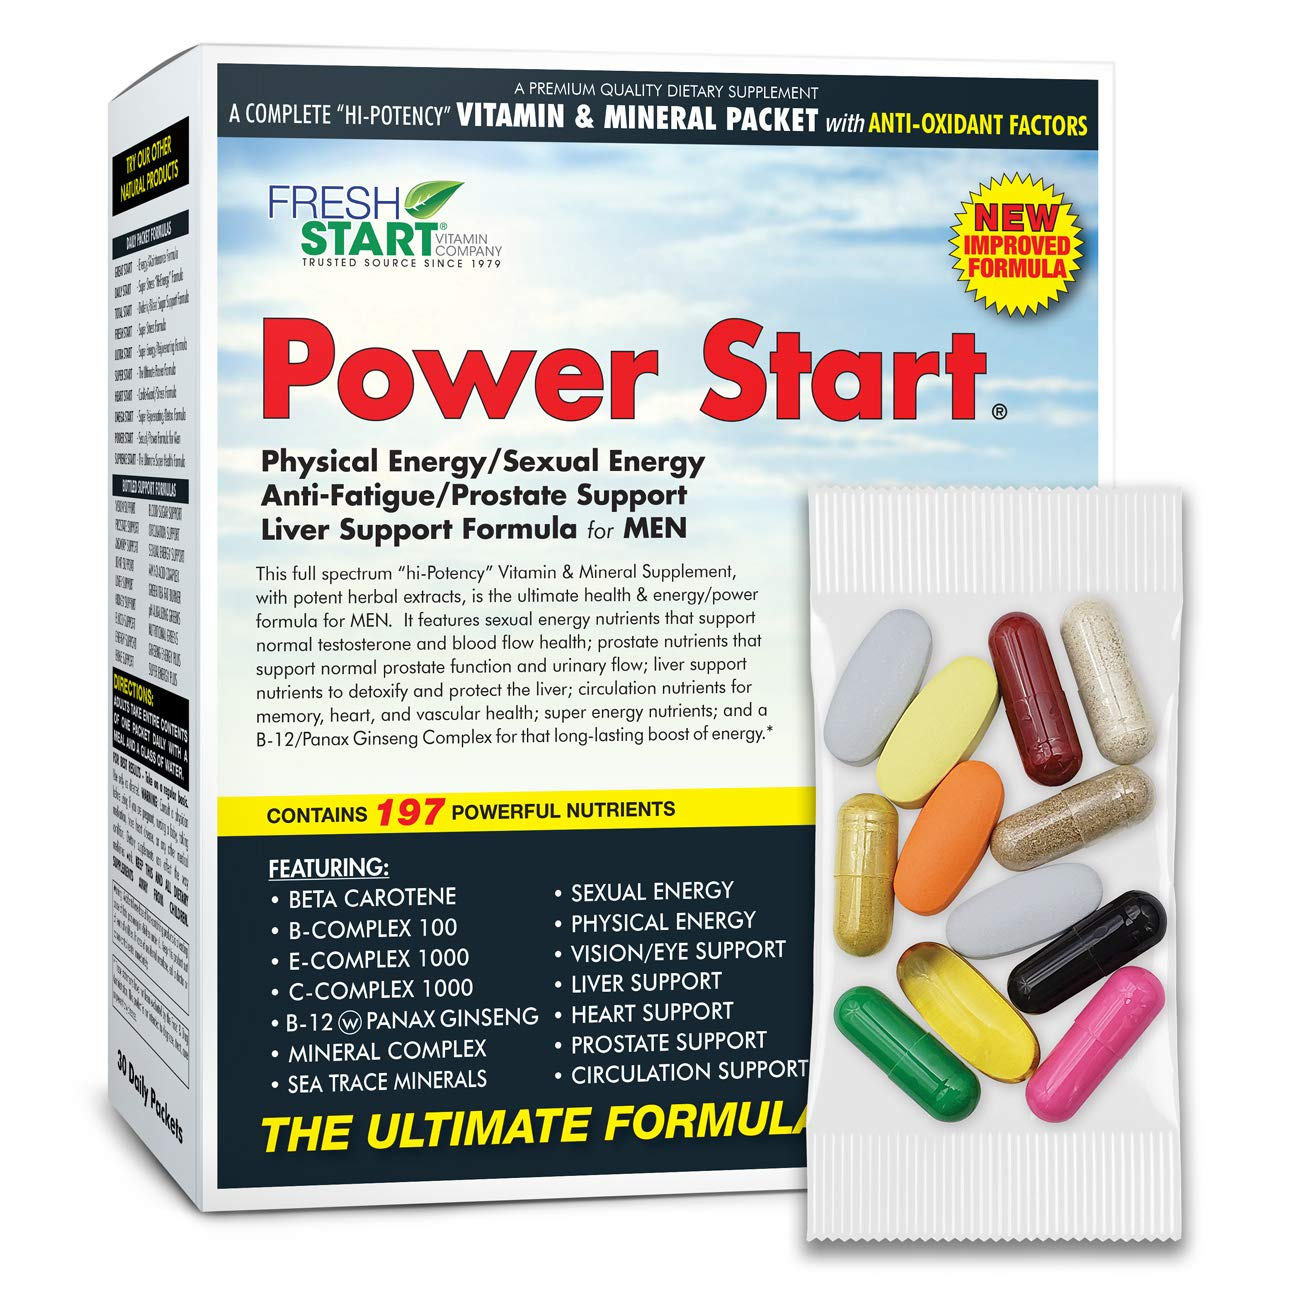 Power Start - Complete Daily Vitamin Packet | Premium Multivitamin Supplement for Men with Antioxidants | Physical Energy + Stamina + Liver + Prostate + Testosterone Support | 30-Day Supply